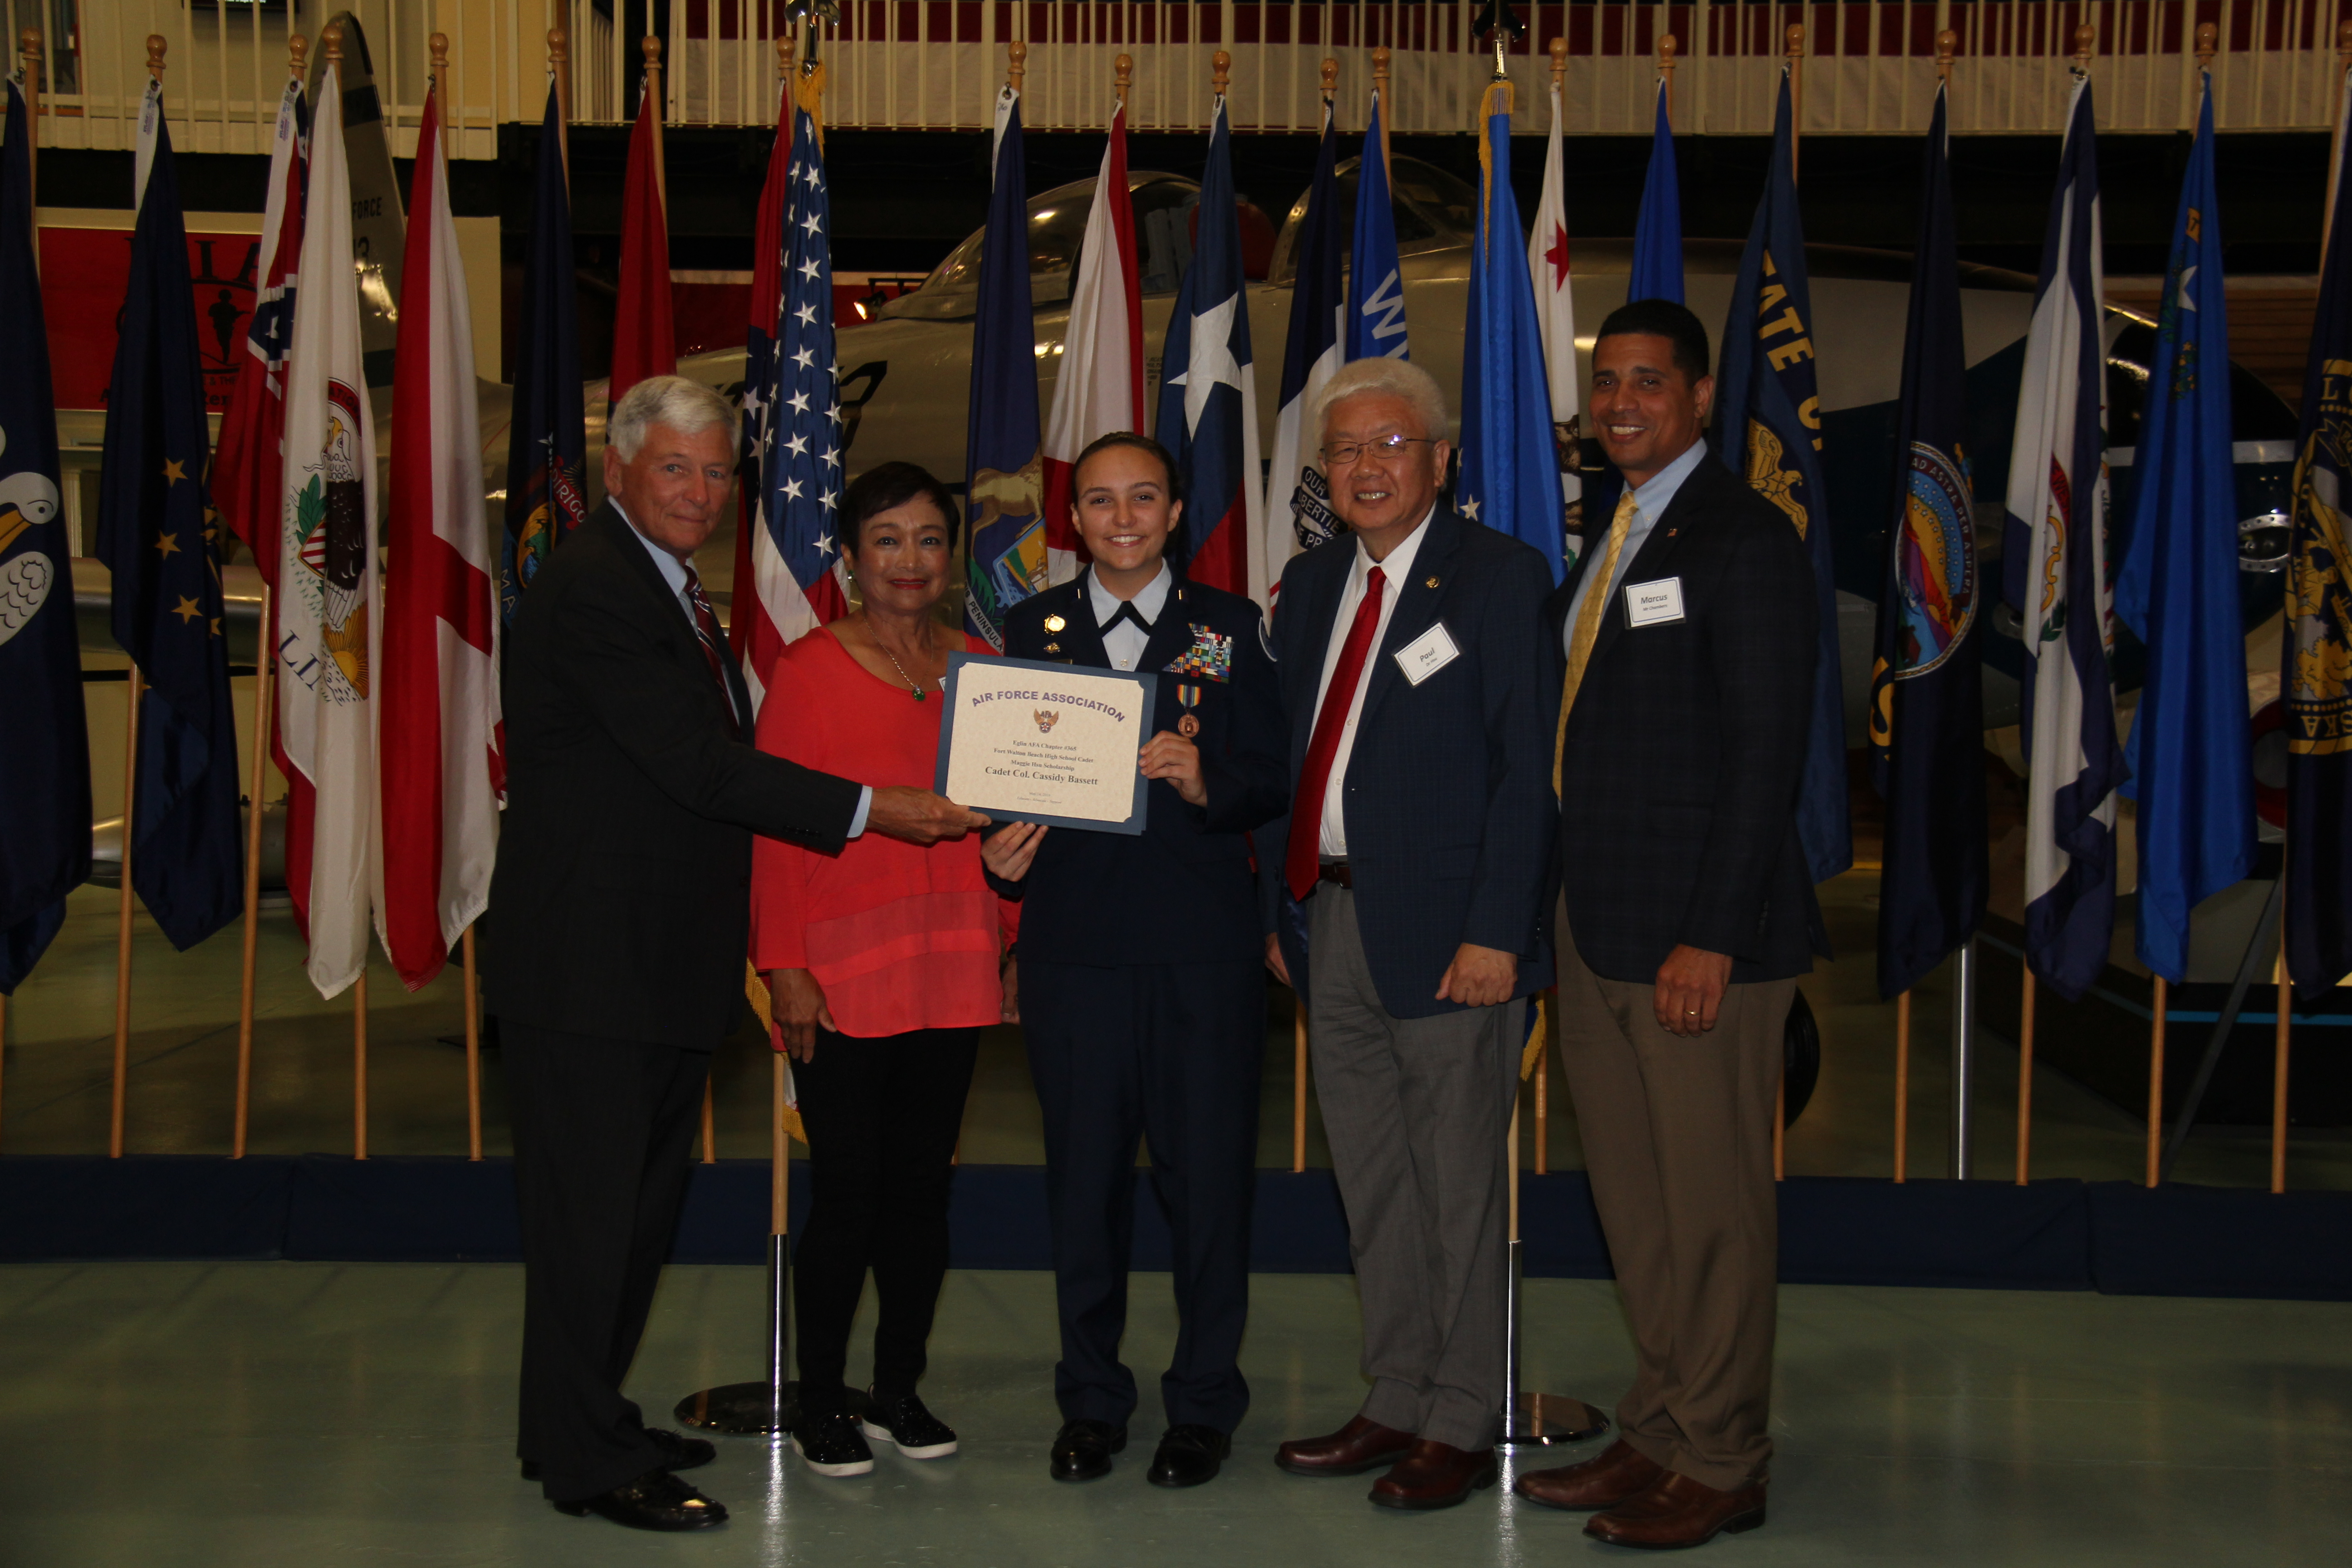 Maggie Hsu Scholarship - Cadet Colonel Cassidy Bassett, Fort Walton Beach High School